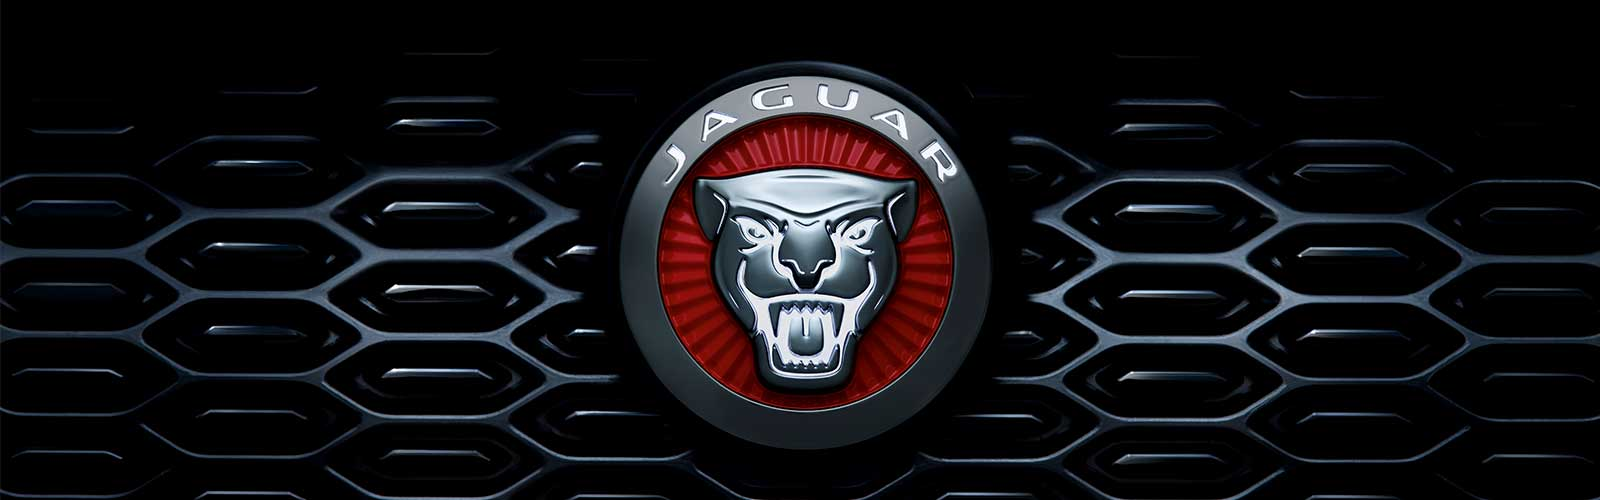 Front right headlight of a red Jaguar.